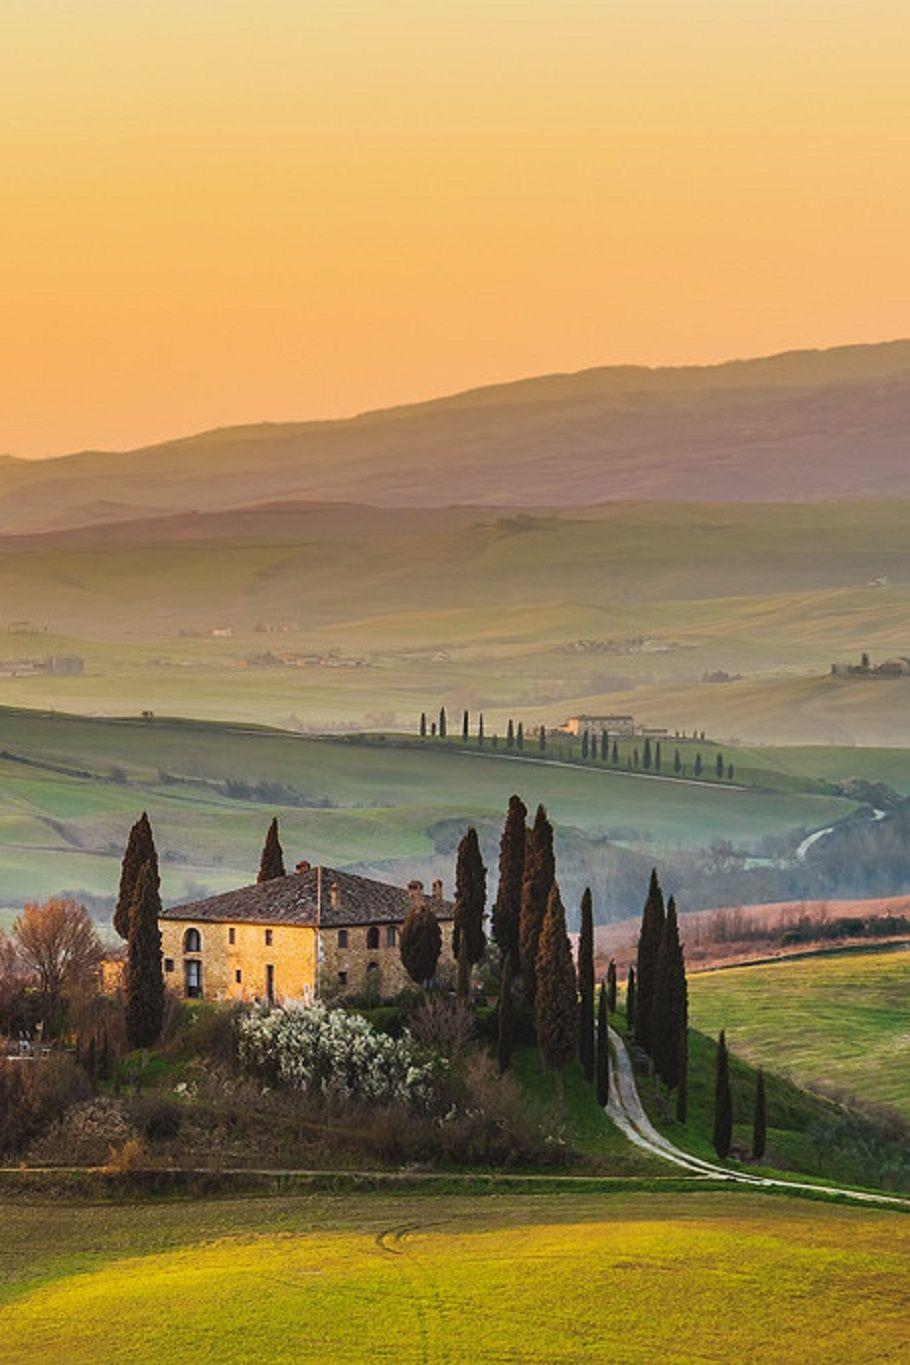 Another amazing picture of the Tuscan Countryside #Tuscany #travel ...